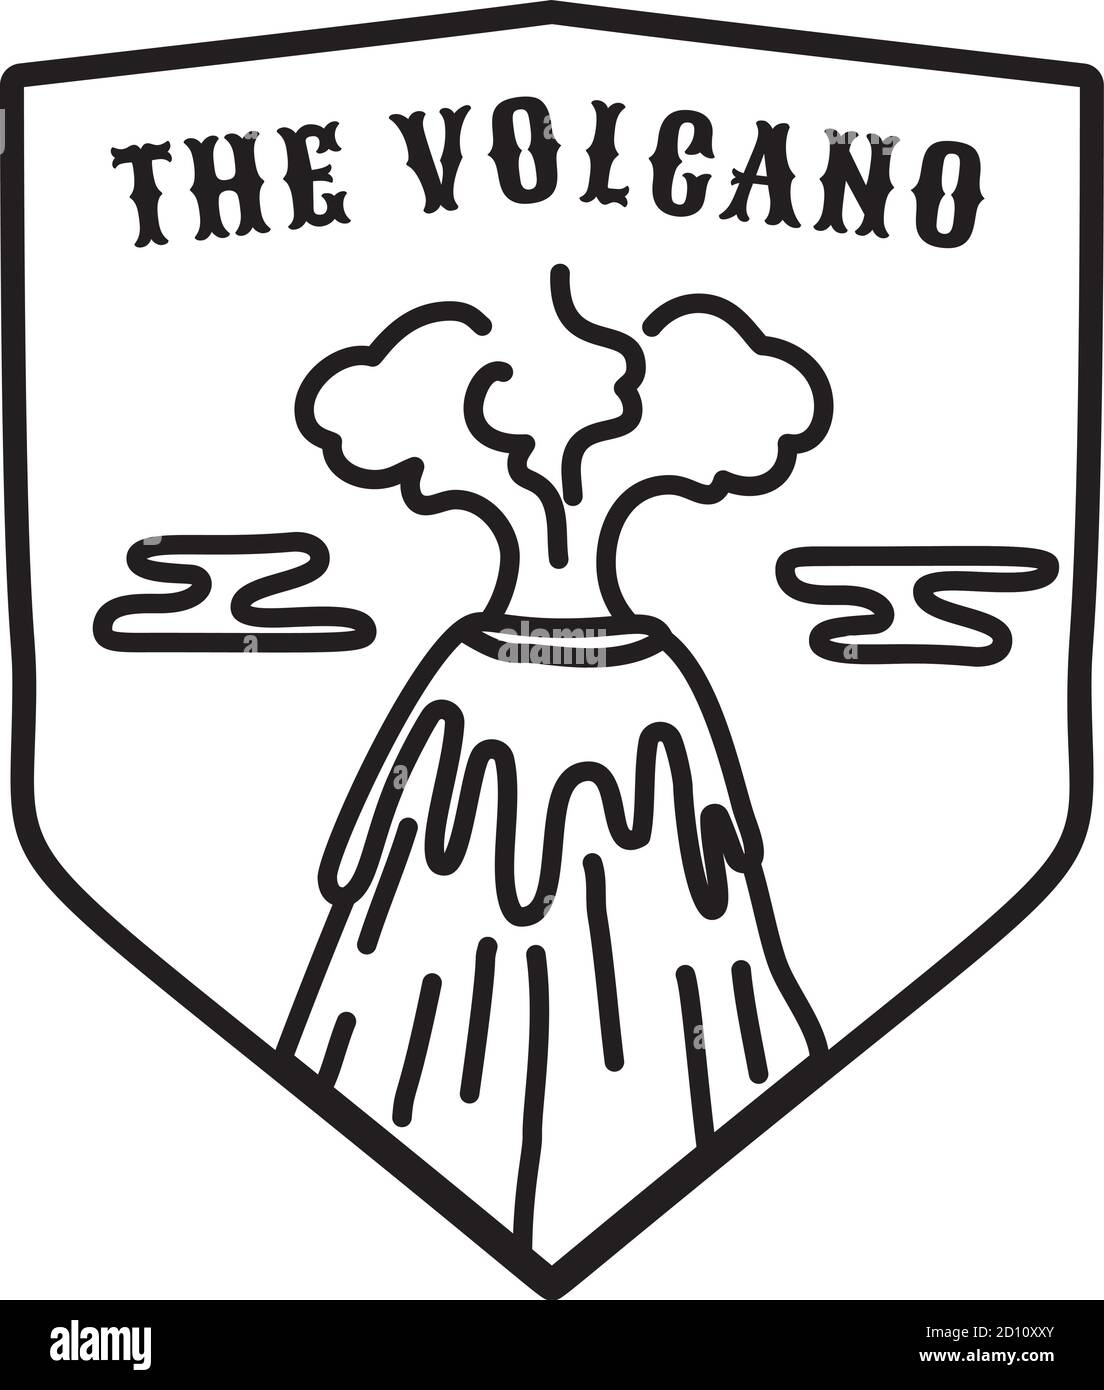 Vintage volcano emblem. Adventure badge illustration design. Outdoor logo with mountain and text - The volcano. Unusual style badge sticker. Stock Stock Vector